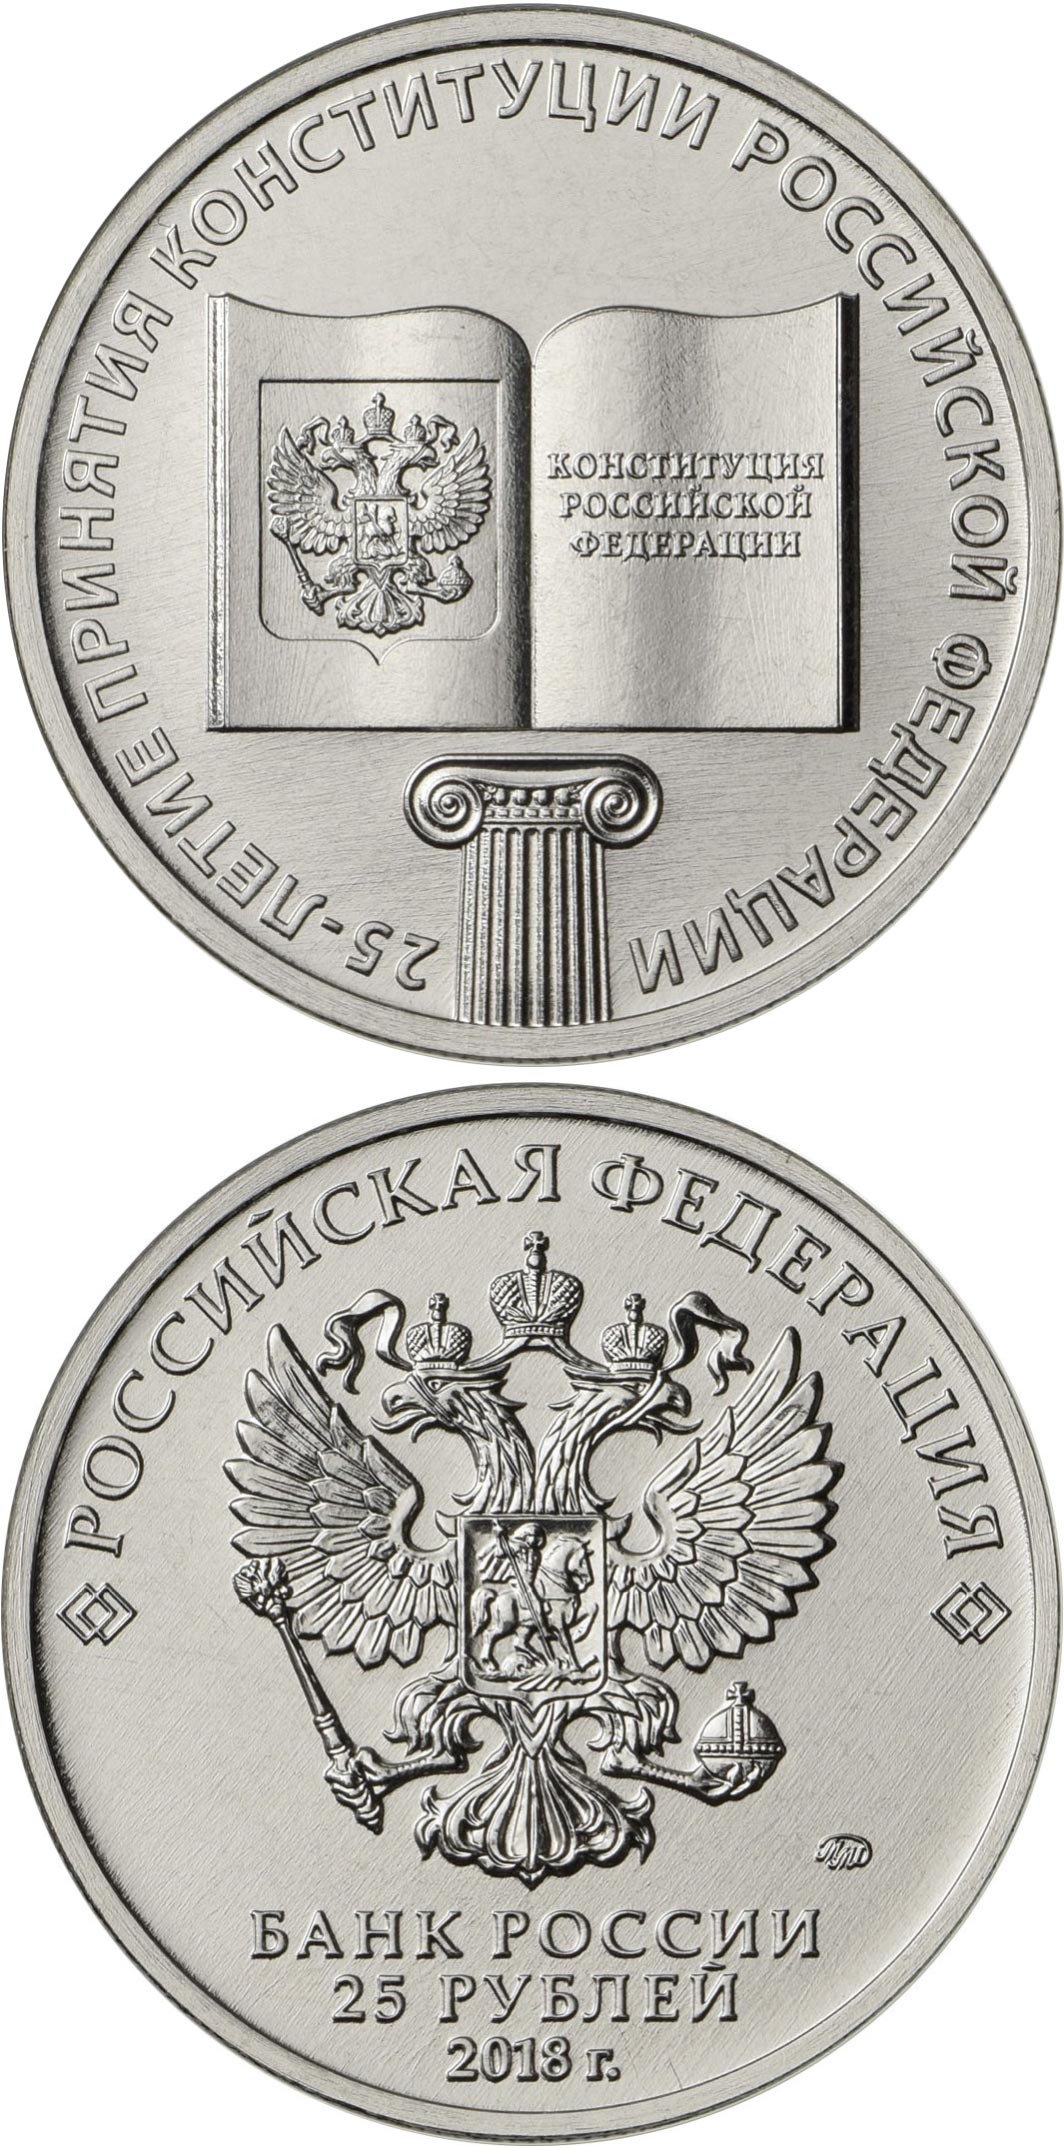 Image of 25 rubles coin – 25th Anniversary of the Adoption of the Constitution of the Russian Federation  | Russia 2018.  The Copper–Nickel (CuNi) coin is of UNC quality.